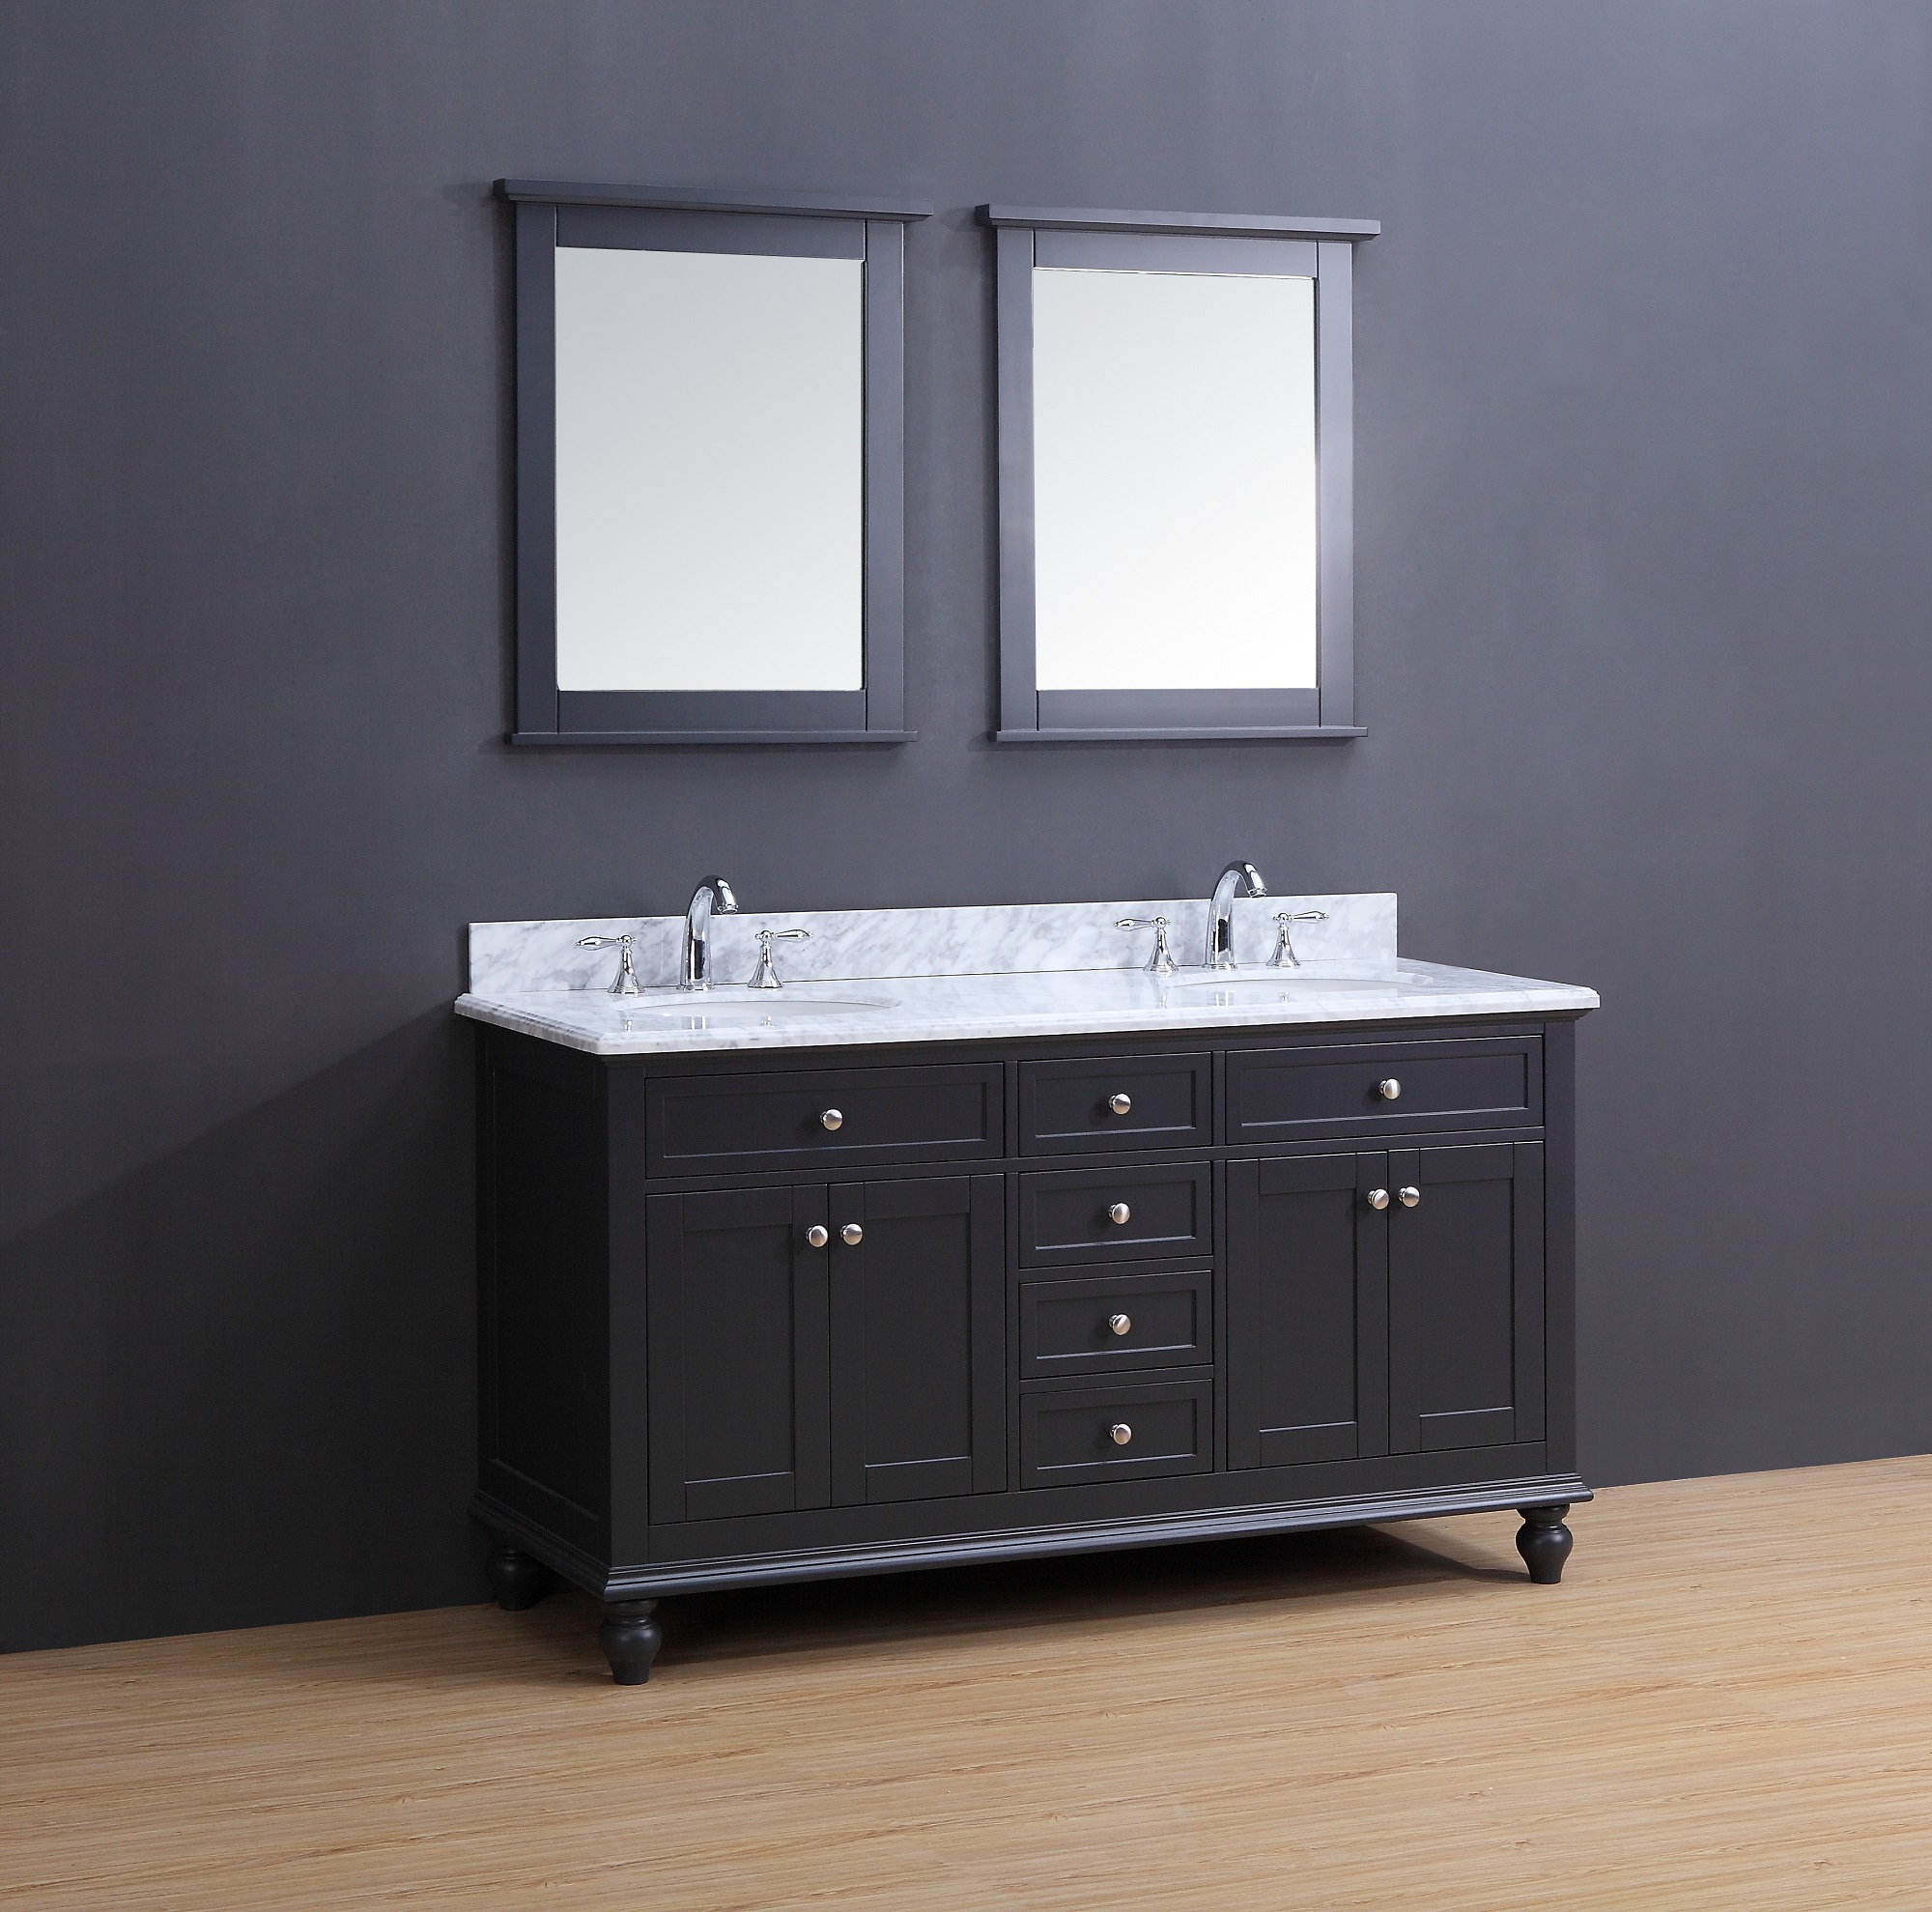 Madison Transitional Bathroom Vanity Set With Carrera Marble Top Charcoal Gray 60